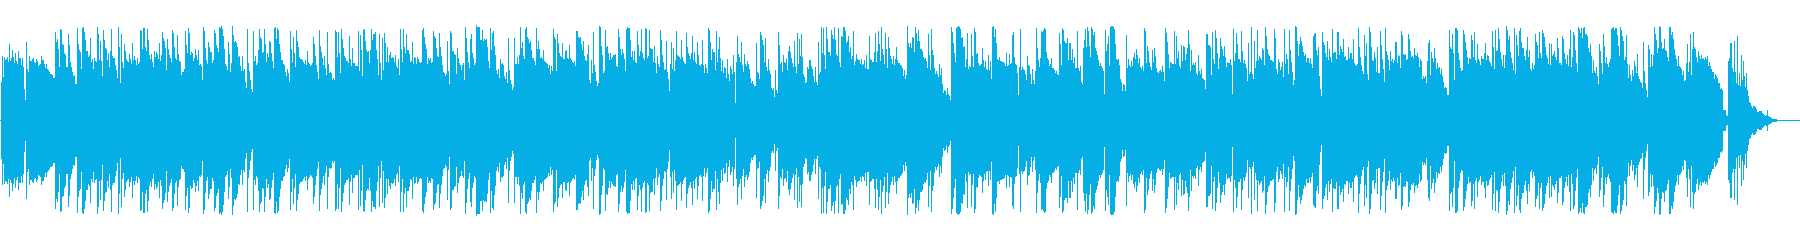 Acoustic guitar healing's reproduced waveform